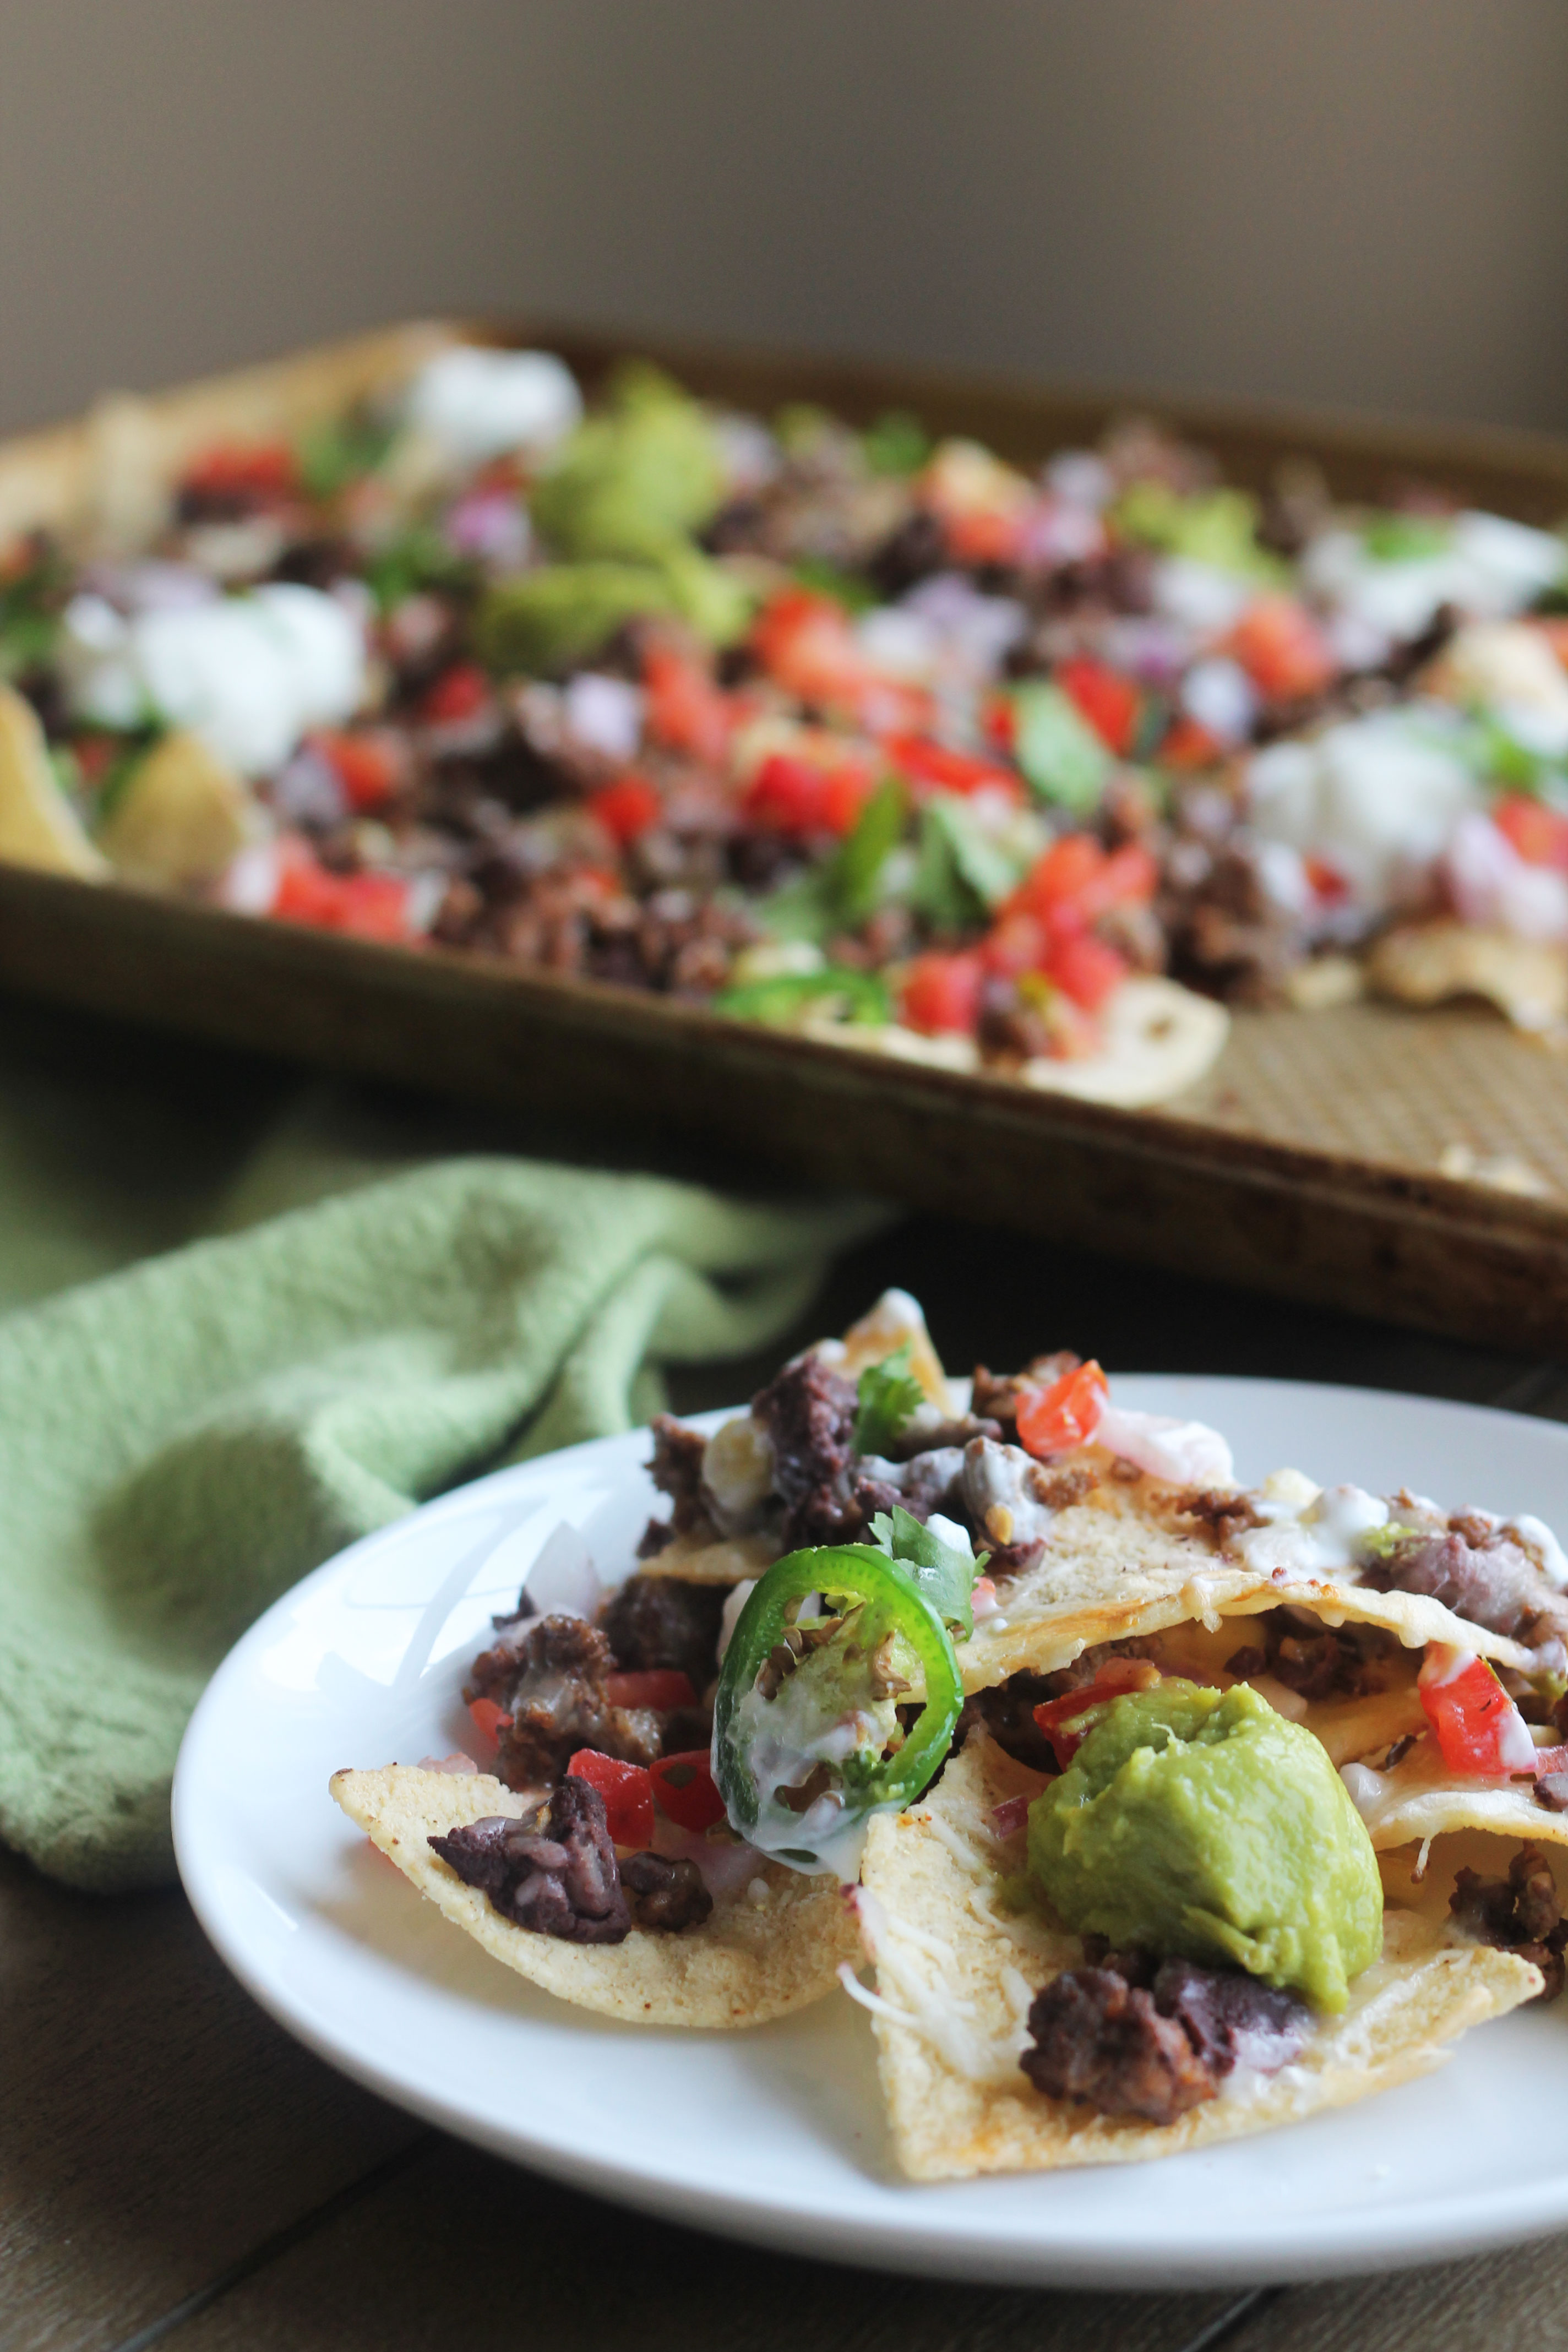 Need a crowd pleasing dish? Then look no further than these Sheet Pan Beef Nachos